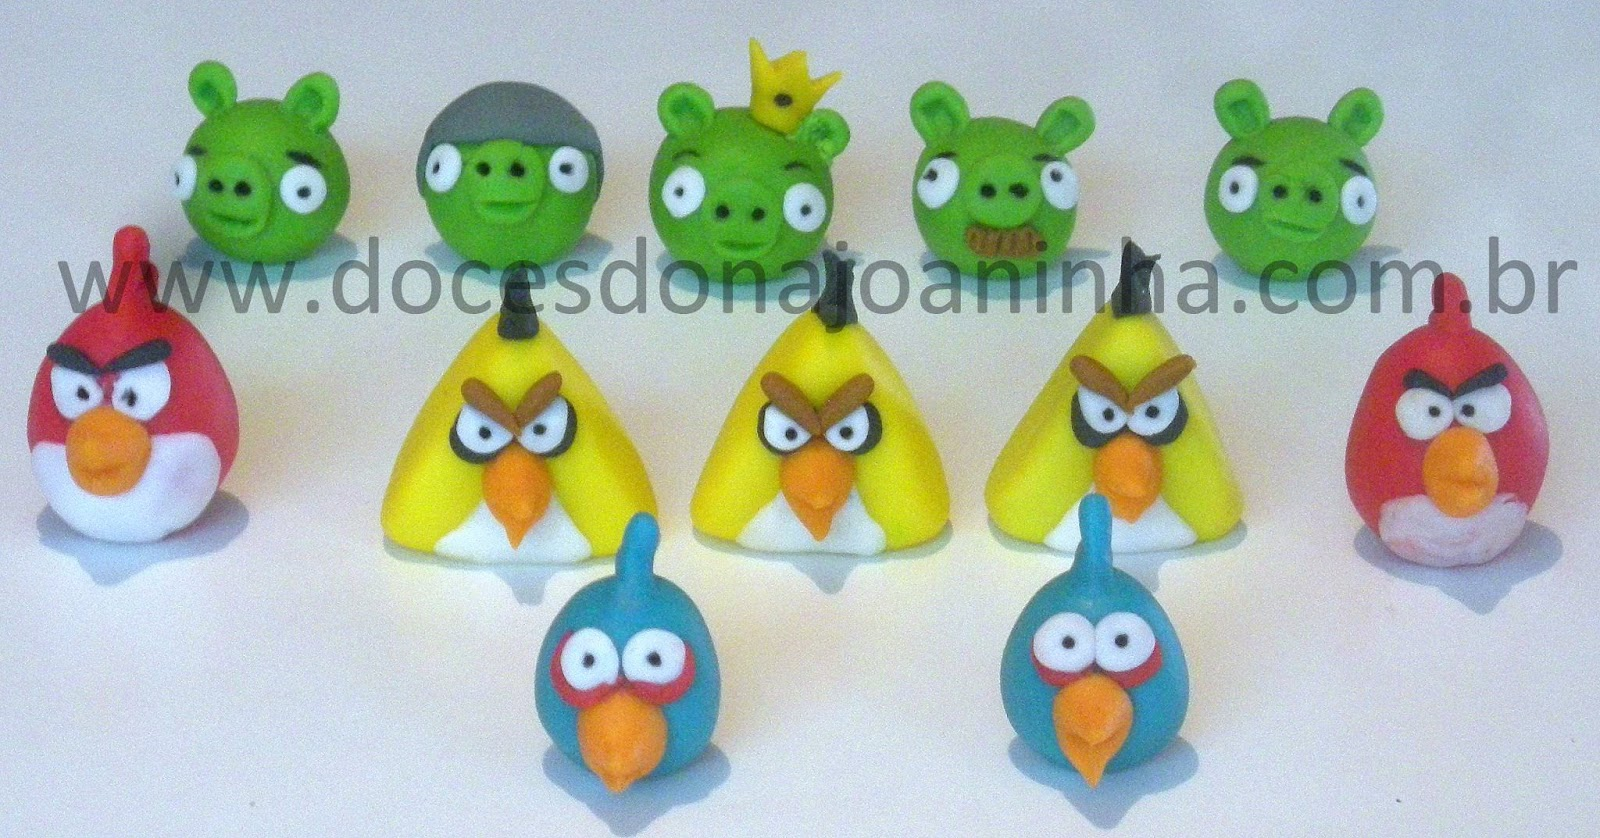 Doces modelados Angry Birds